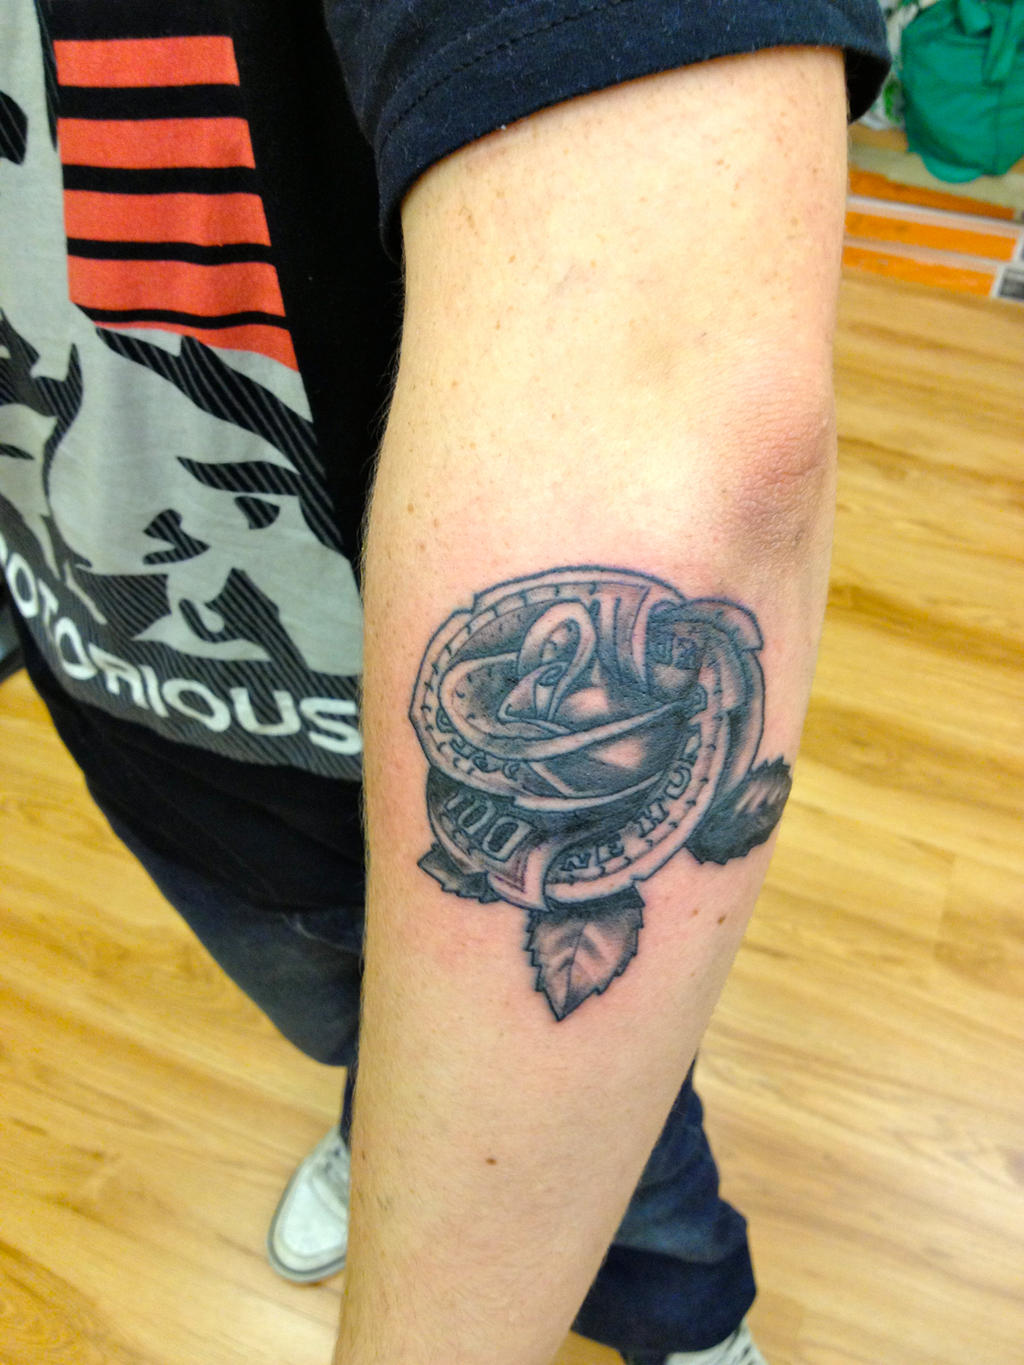 100 Dollar Bill Rose Tattoo By Dazzbishop On Deviantart Ideas And Designs